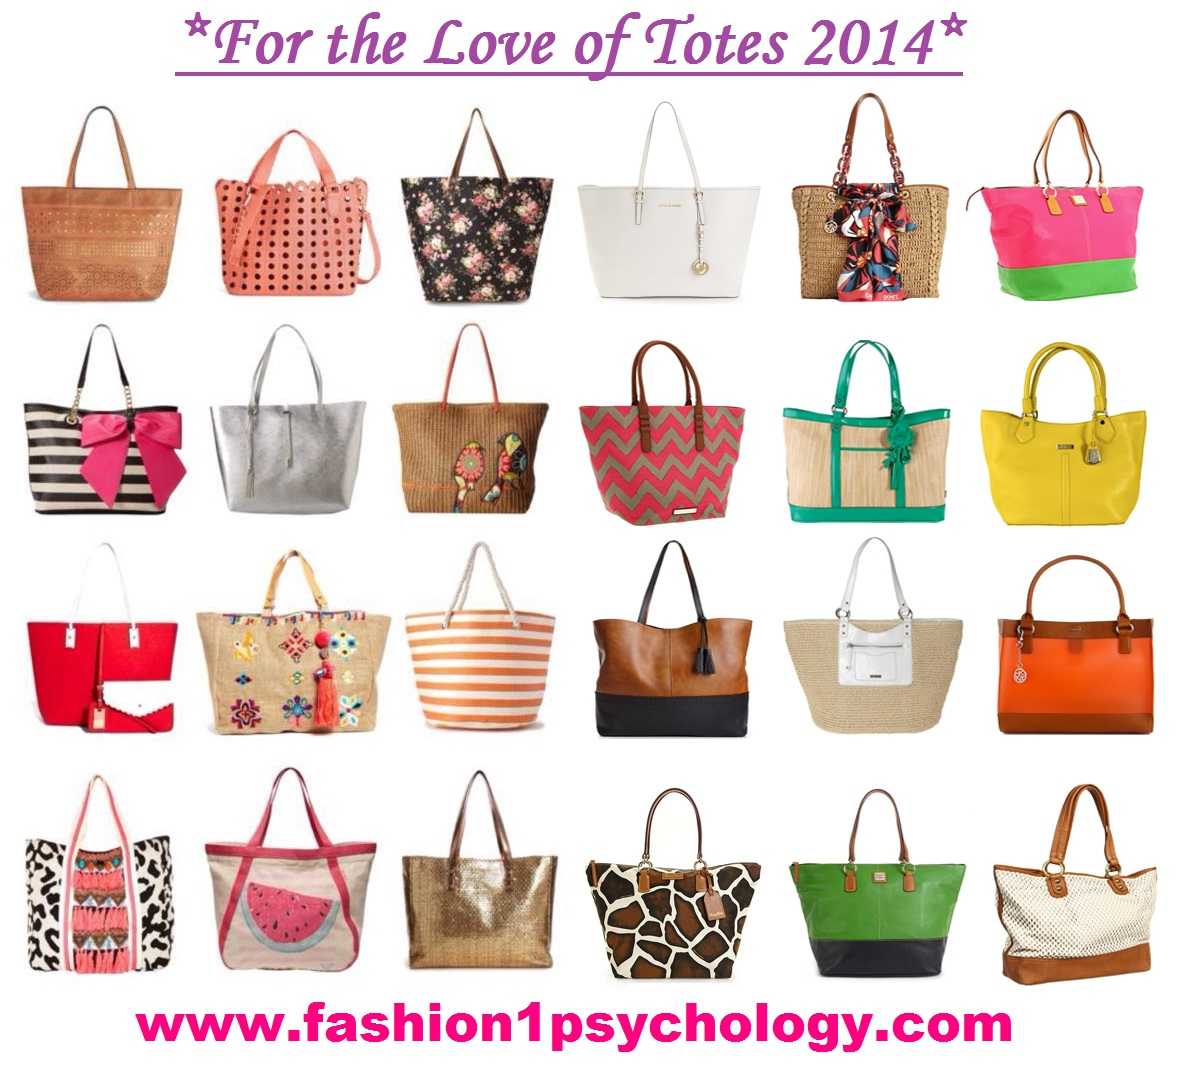 *For The Love of Totes*